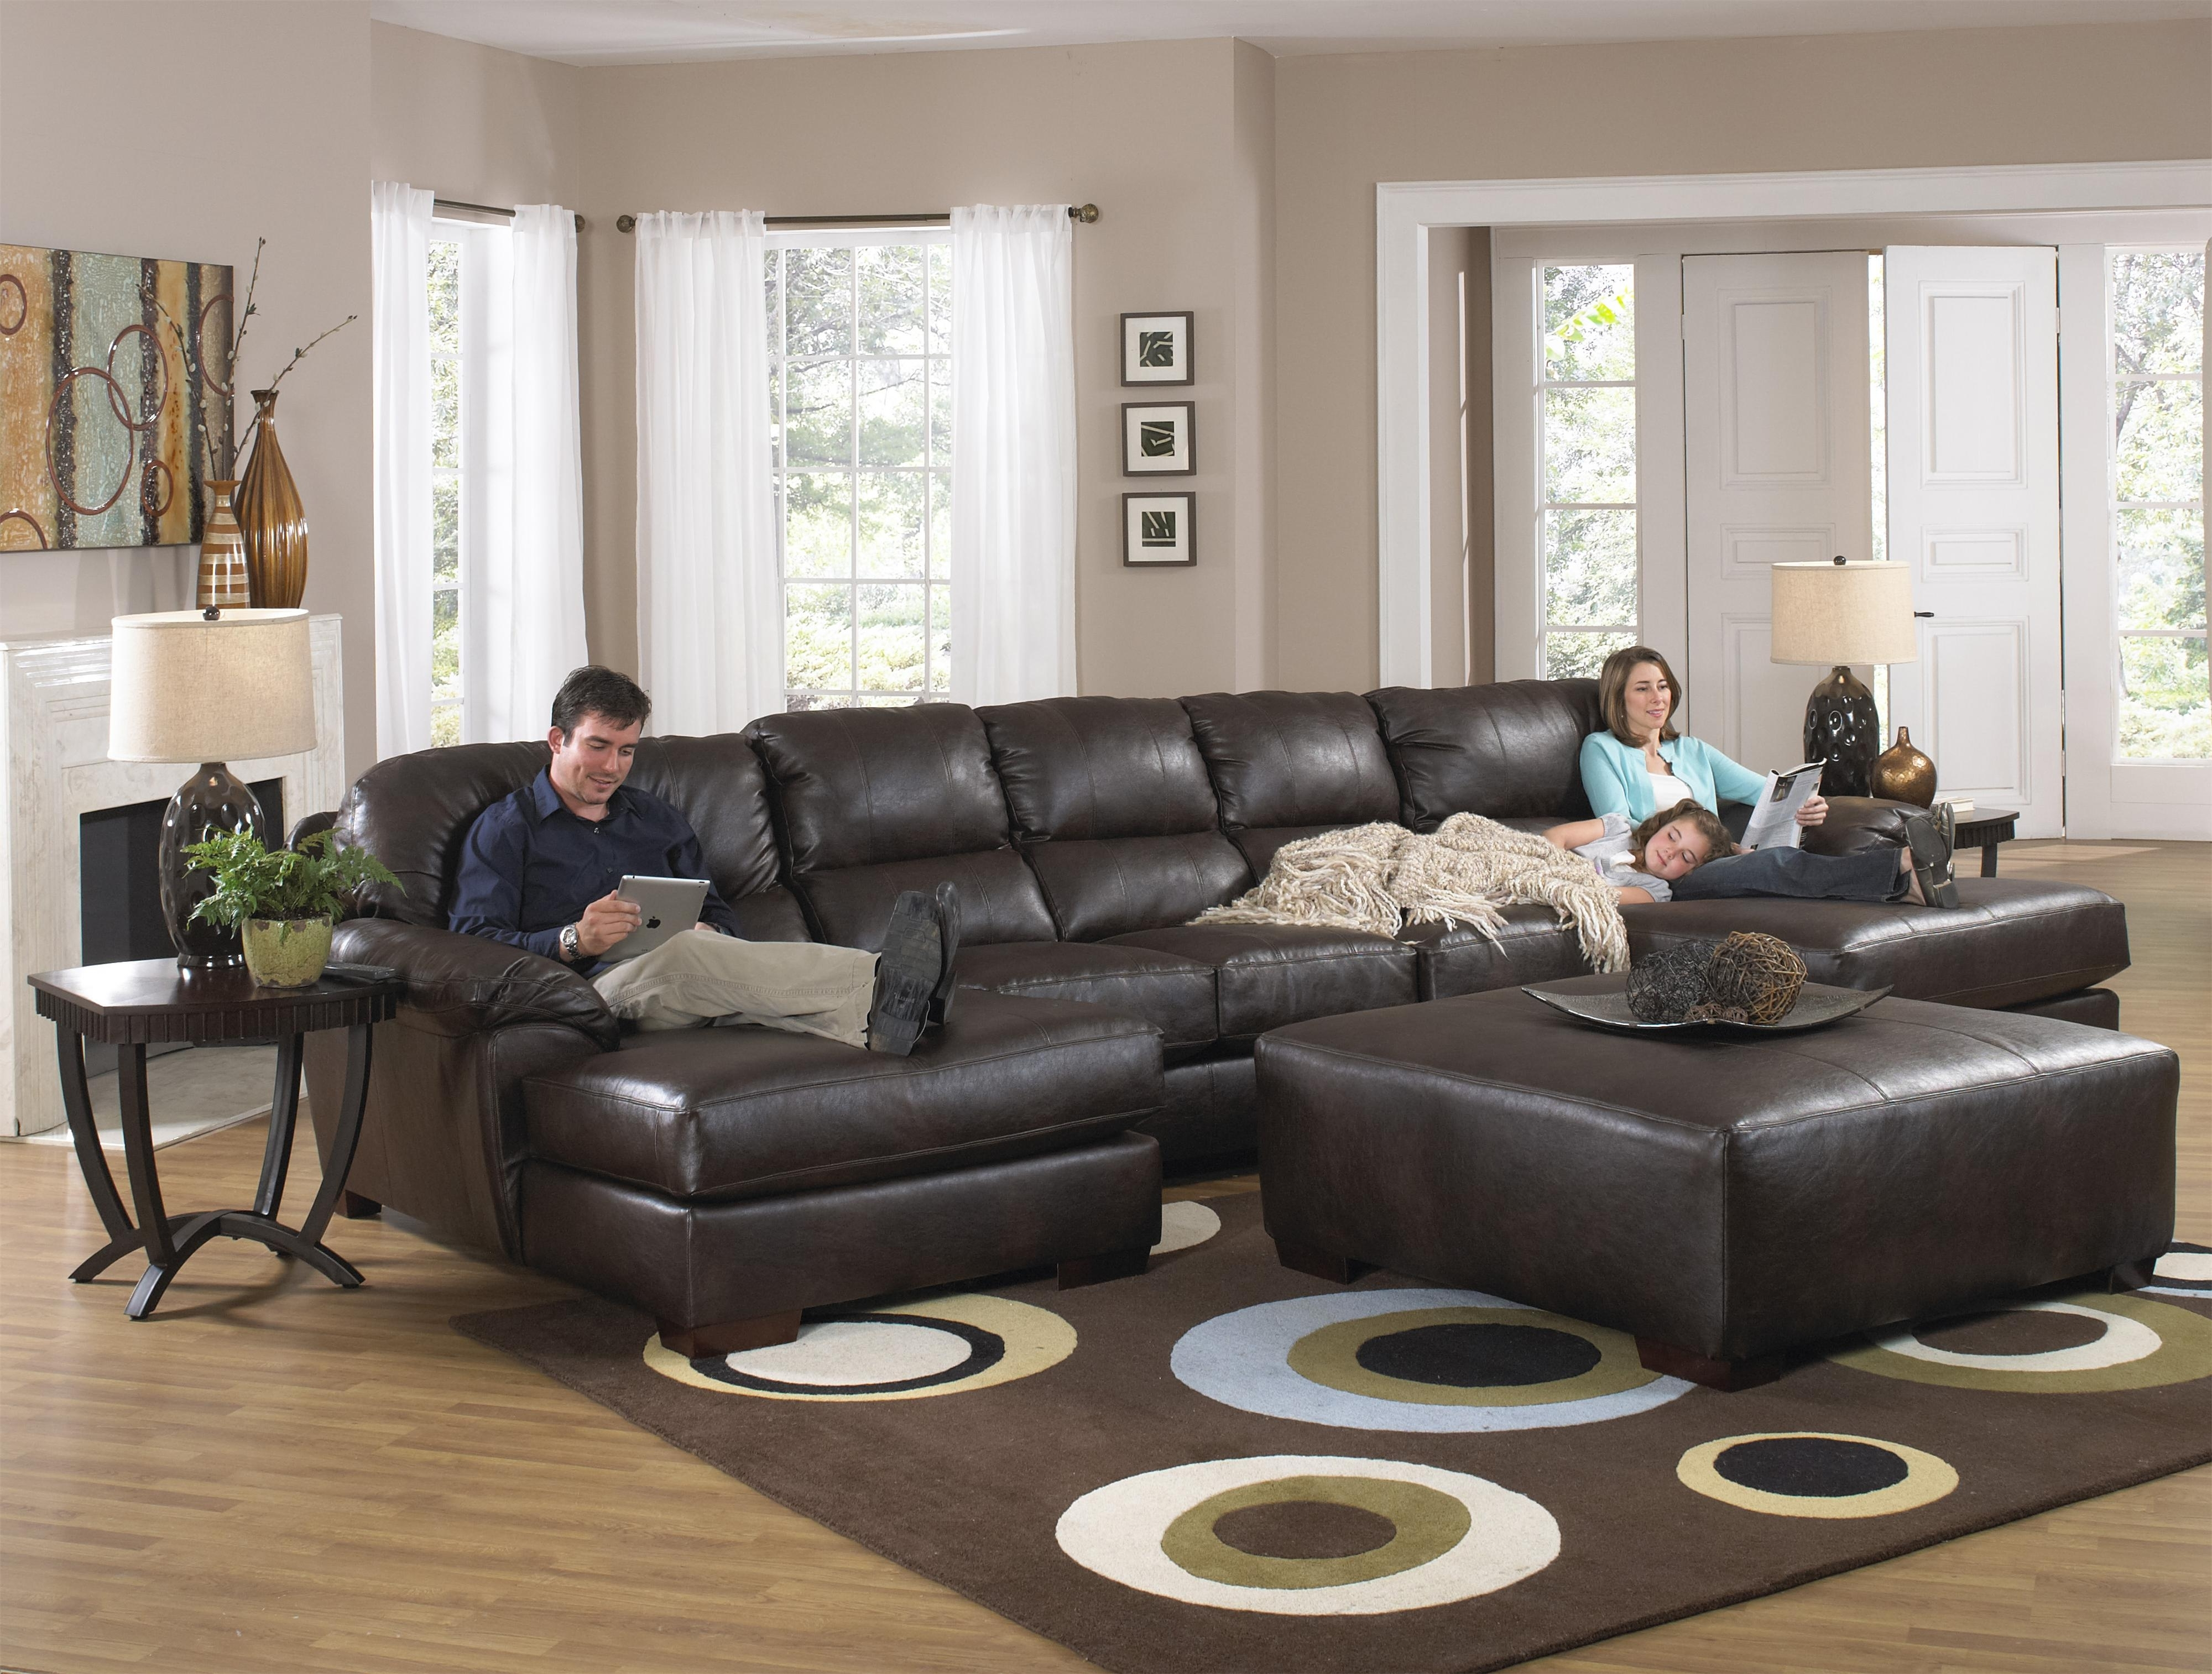 Two Chaise Sectional Sofa With Five Total Seatsjackson Throughout Well Known Chaise Sectional Sofas (View 6 of 15)